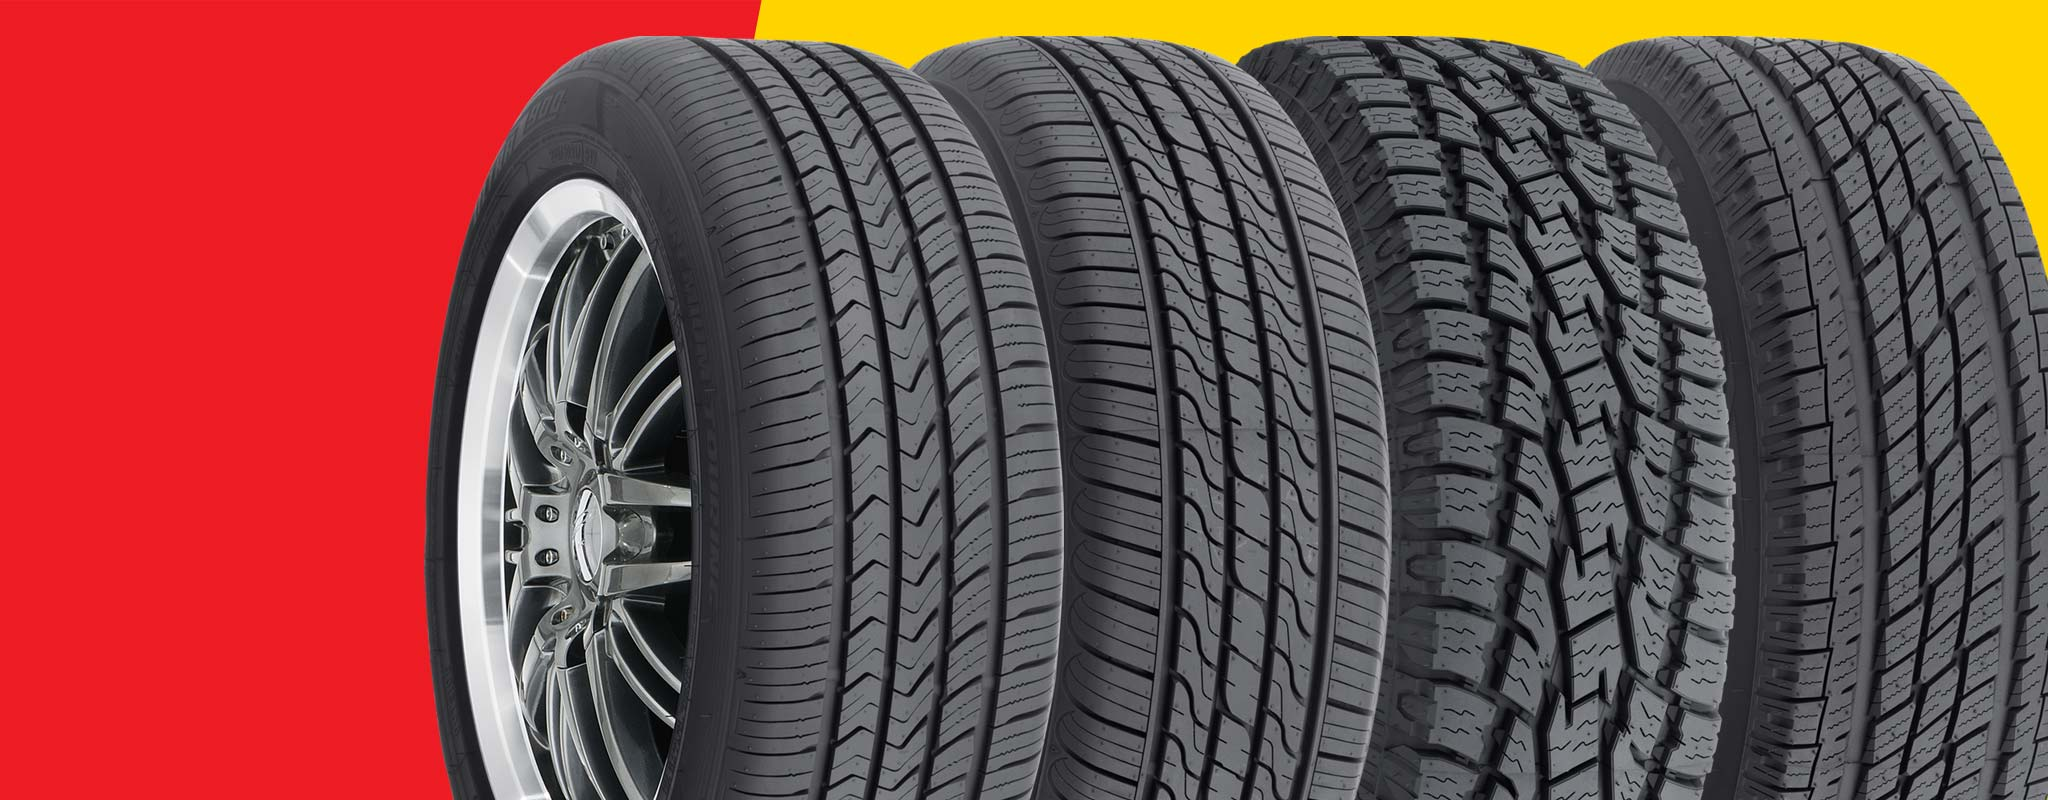 tires wheels for sale buy new tires online in person les schwab